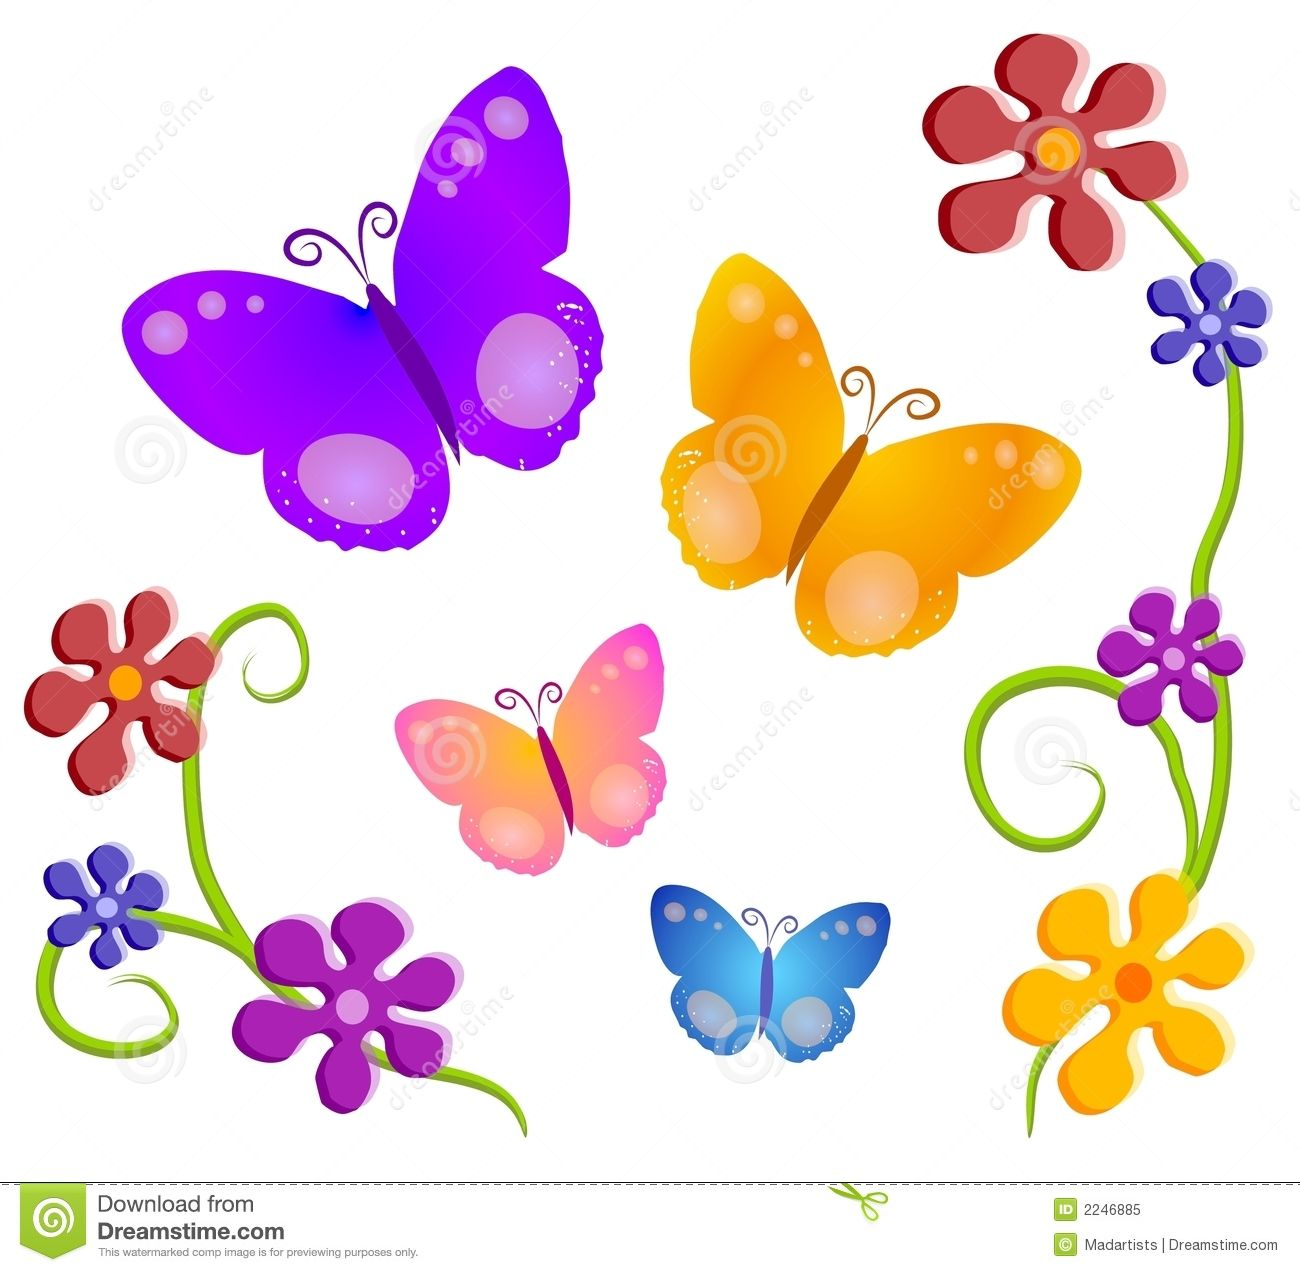 png download Cartoon clip art butterfly. Clipart flowers and butterflies.